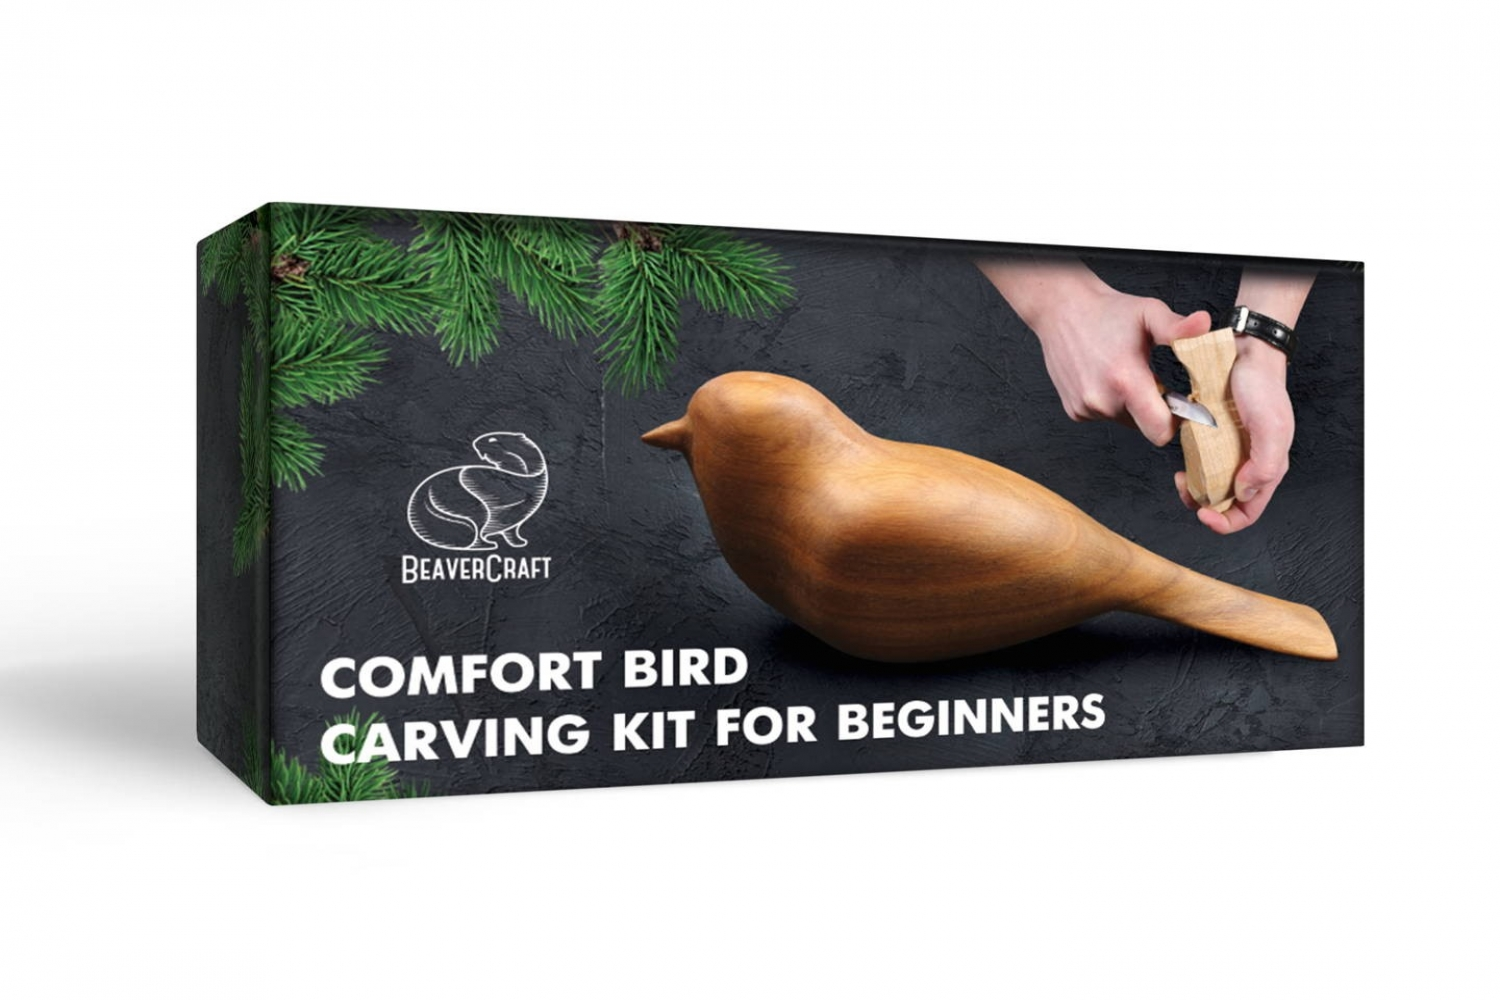 DIY01 – Comfort Bird Carving Kit – Complete Starter Whittling Kit for Beginners Adults Teens and Kids